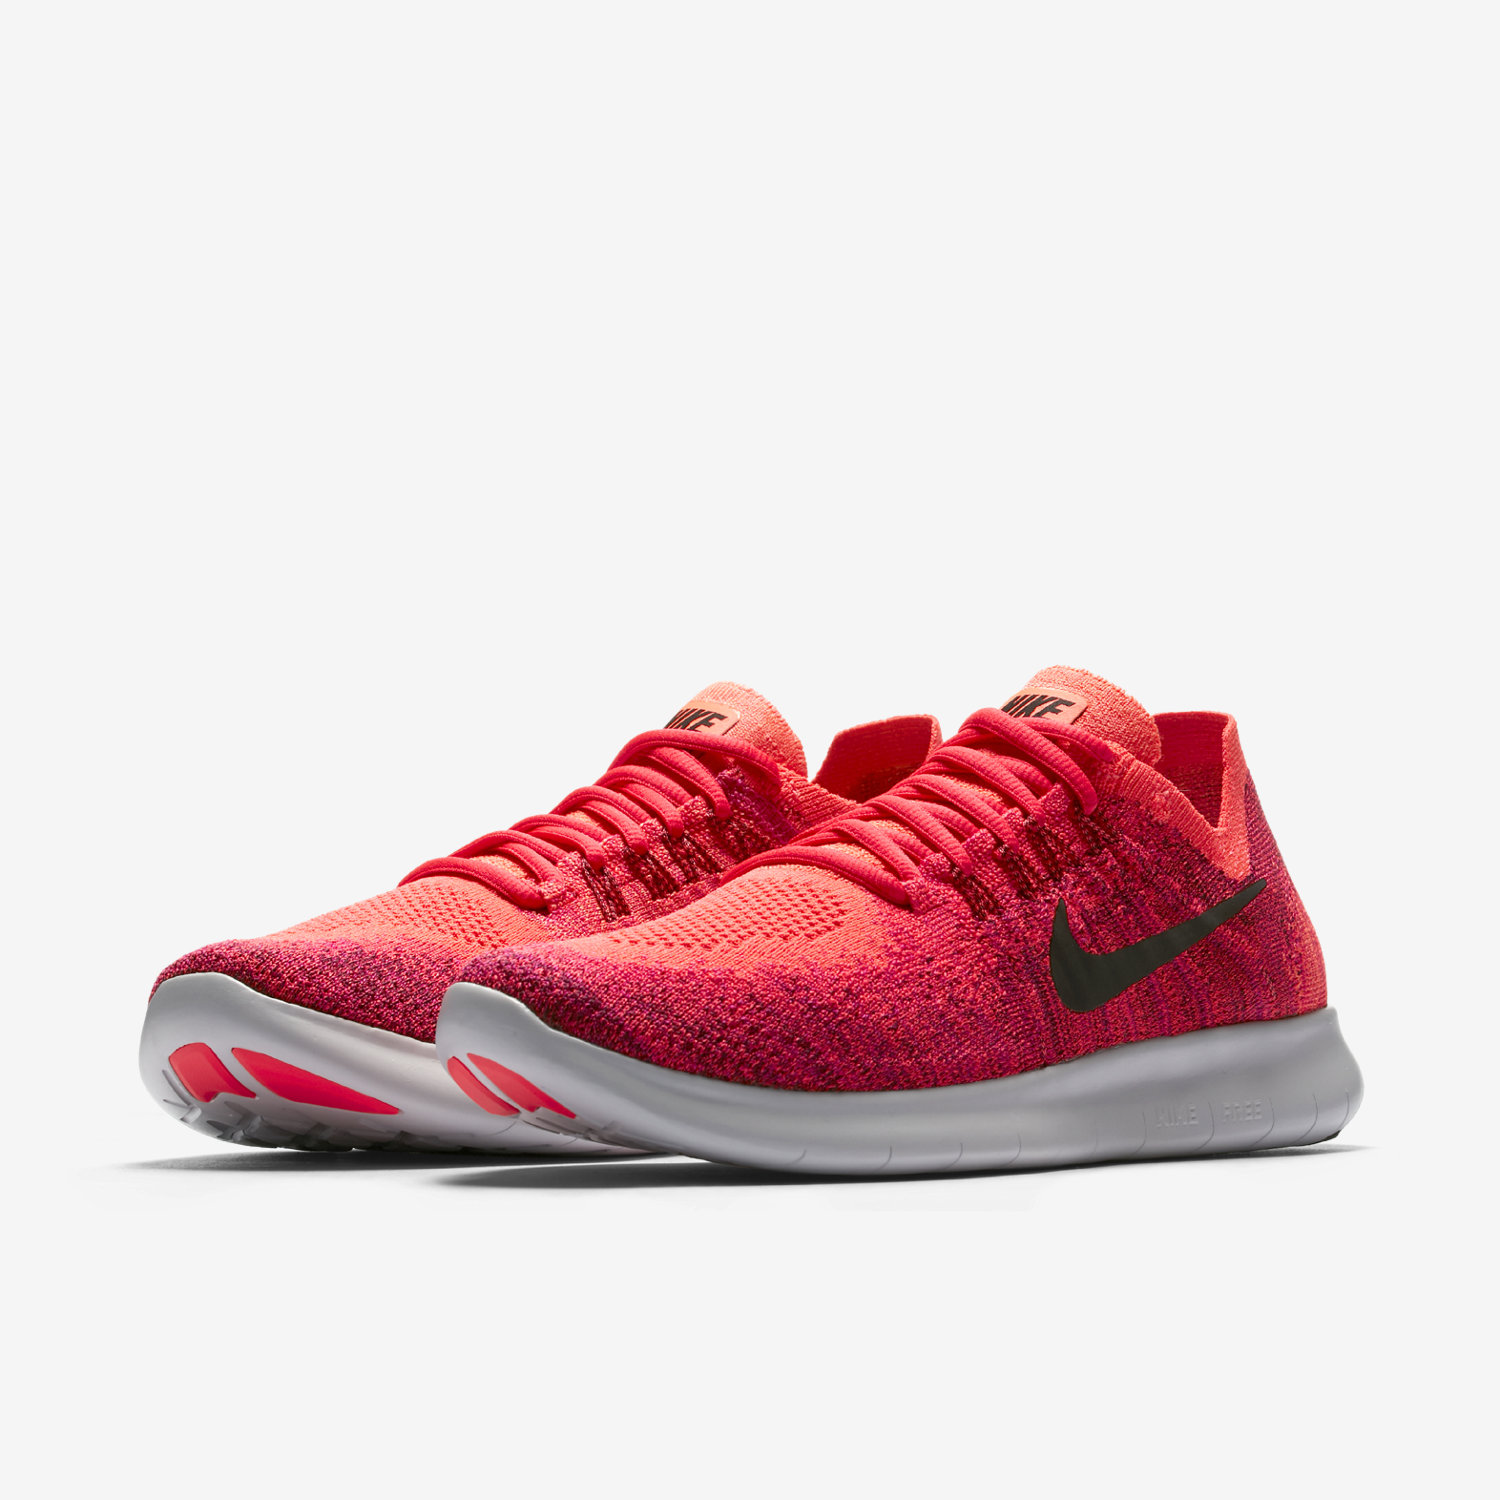 nike free rn flyknit id. Black Bedroom Furniture Sets. Home Design Ideas